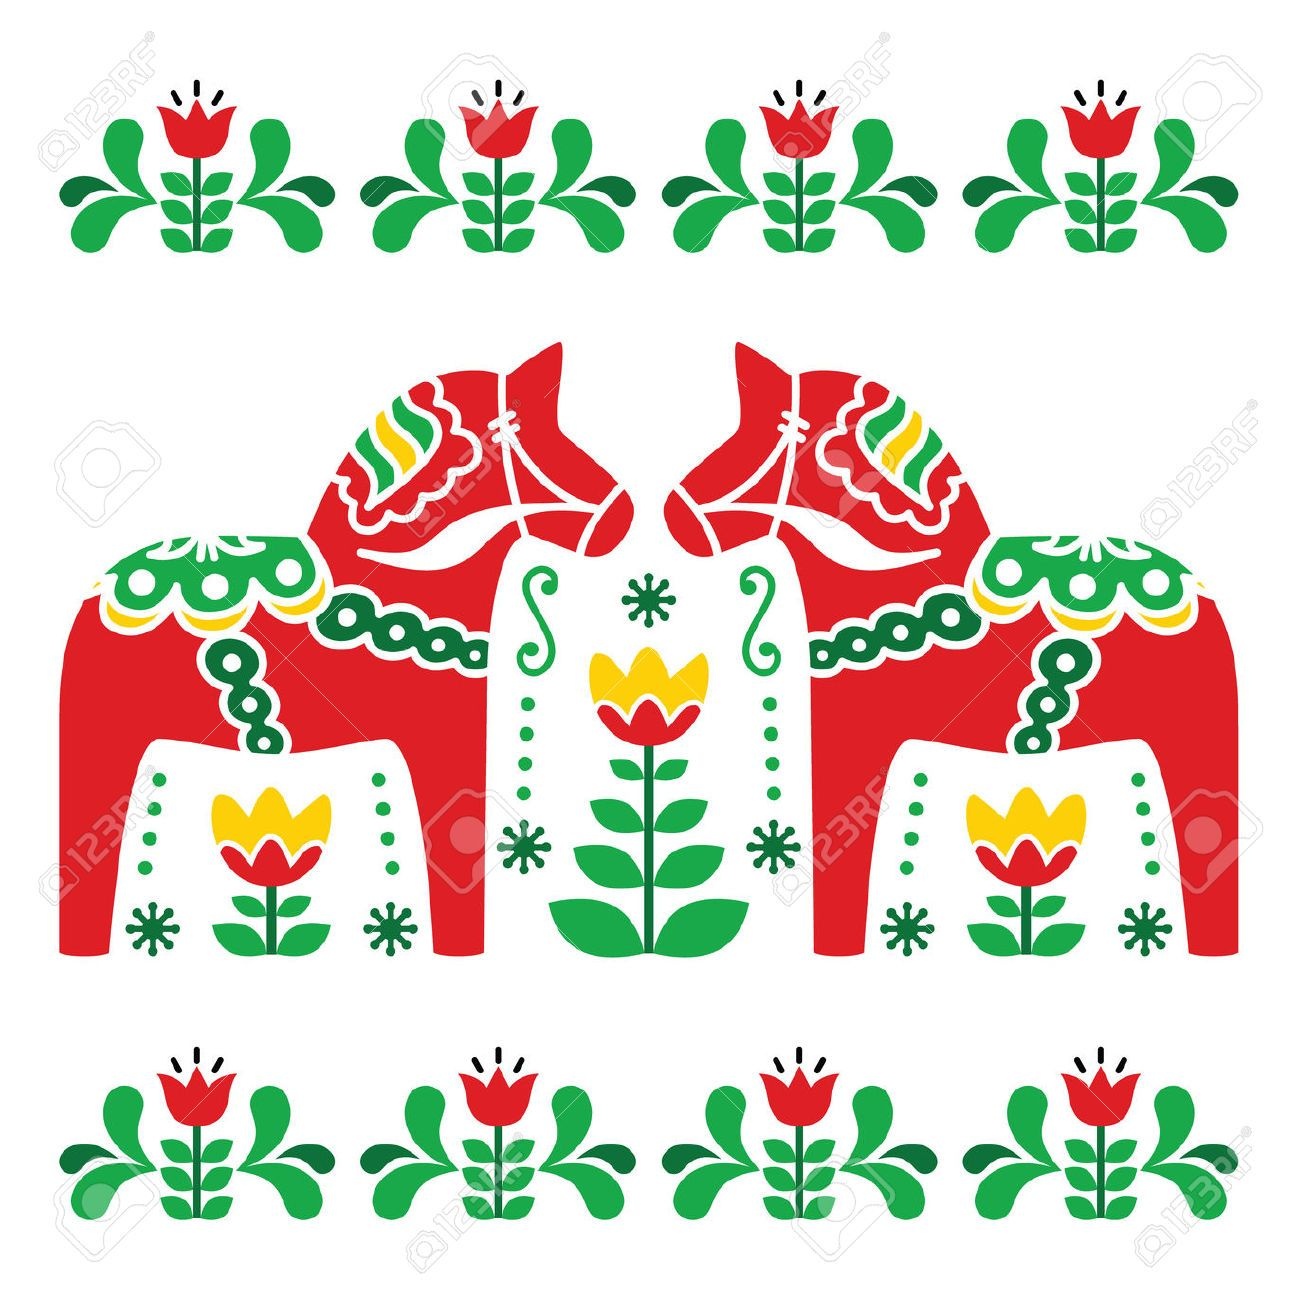 Scandinavian Folk Motifs Google Search Folk Embroidery Pattern Art Scandinavian Folk Art